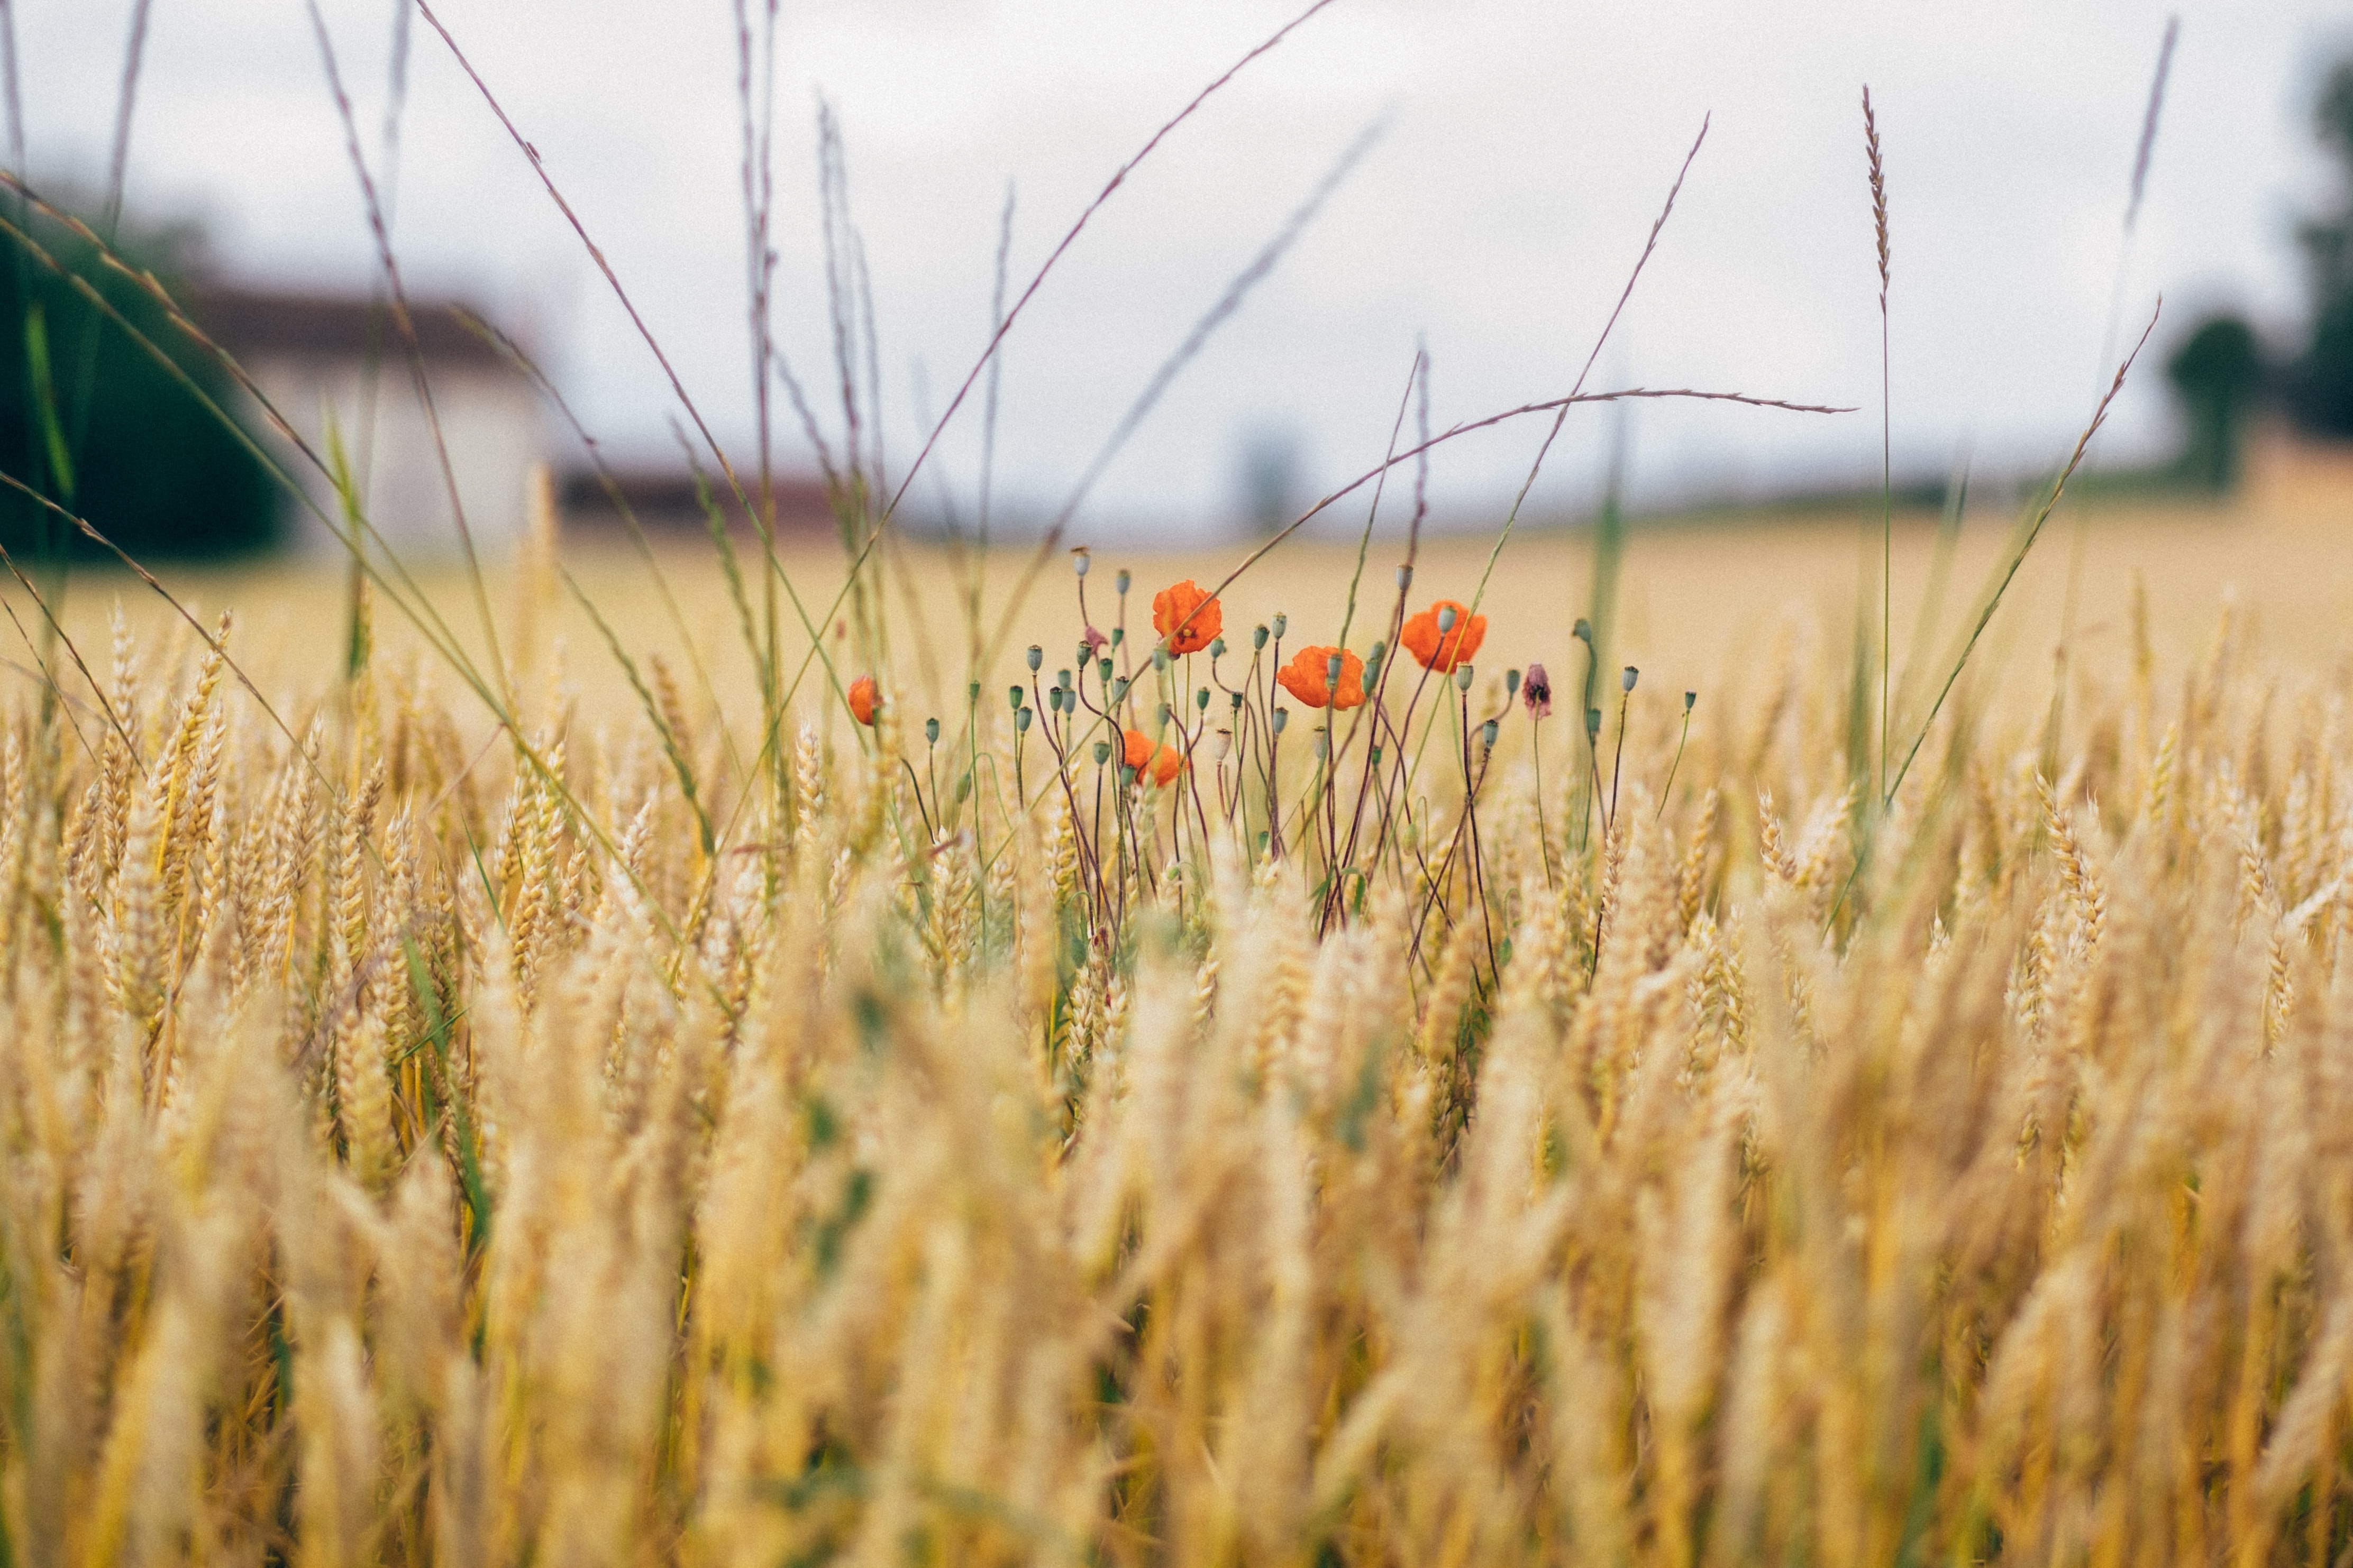 Small gathering of poppies grow among a field of wheat